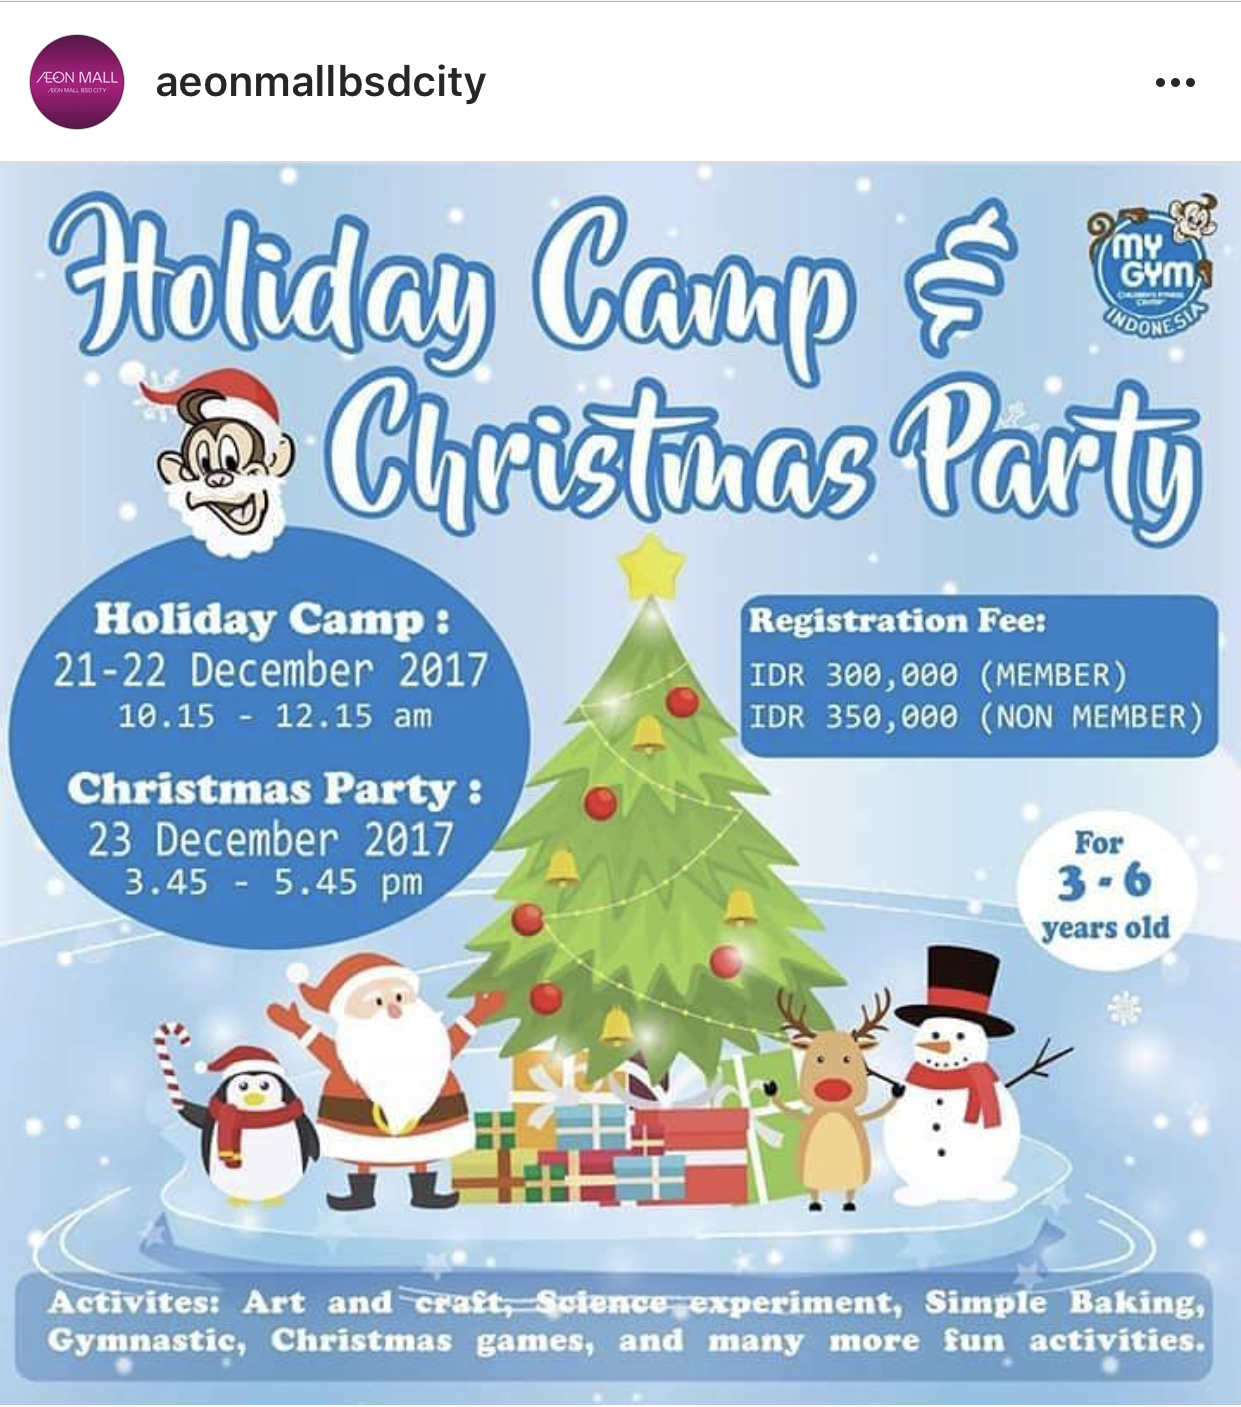 holidaycampandchristmasparty_liburananak_aeonmallbsd